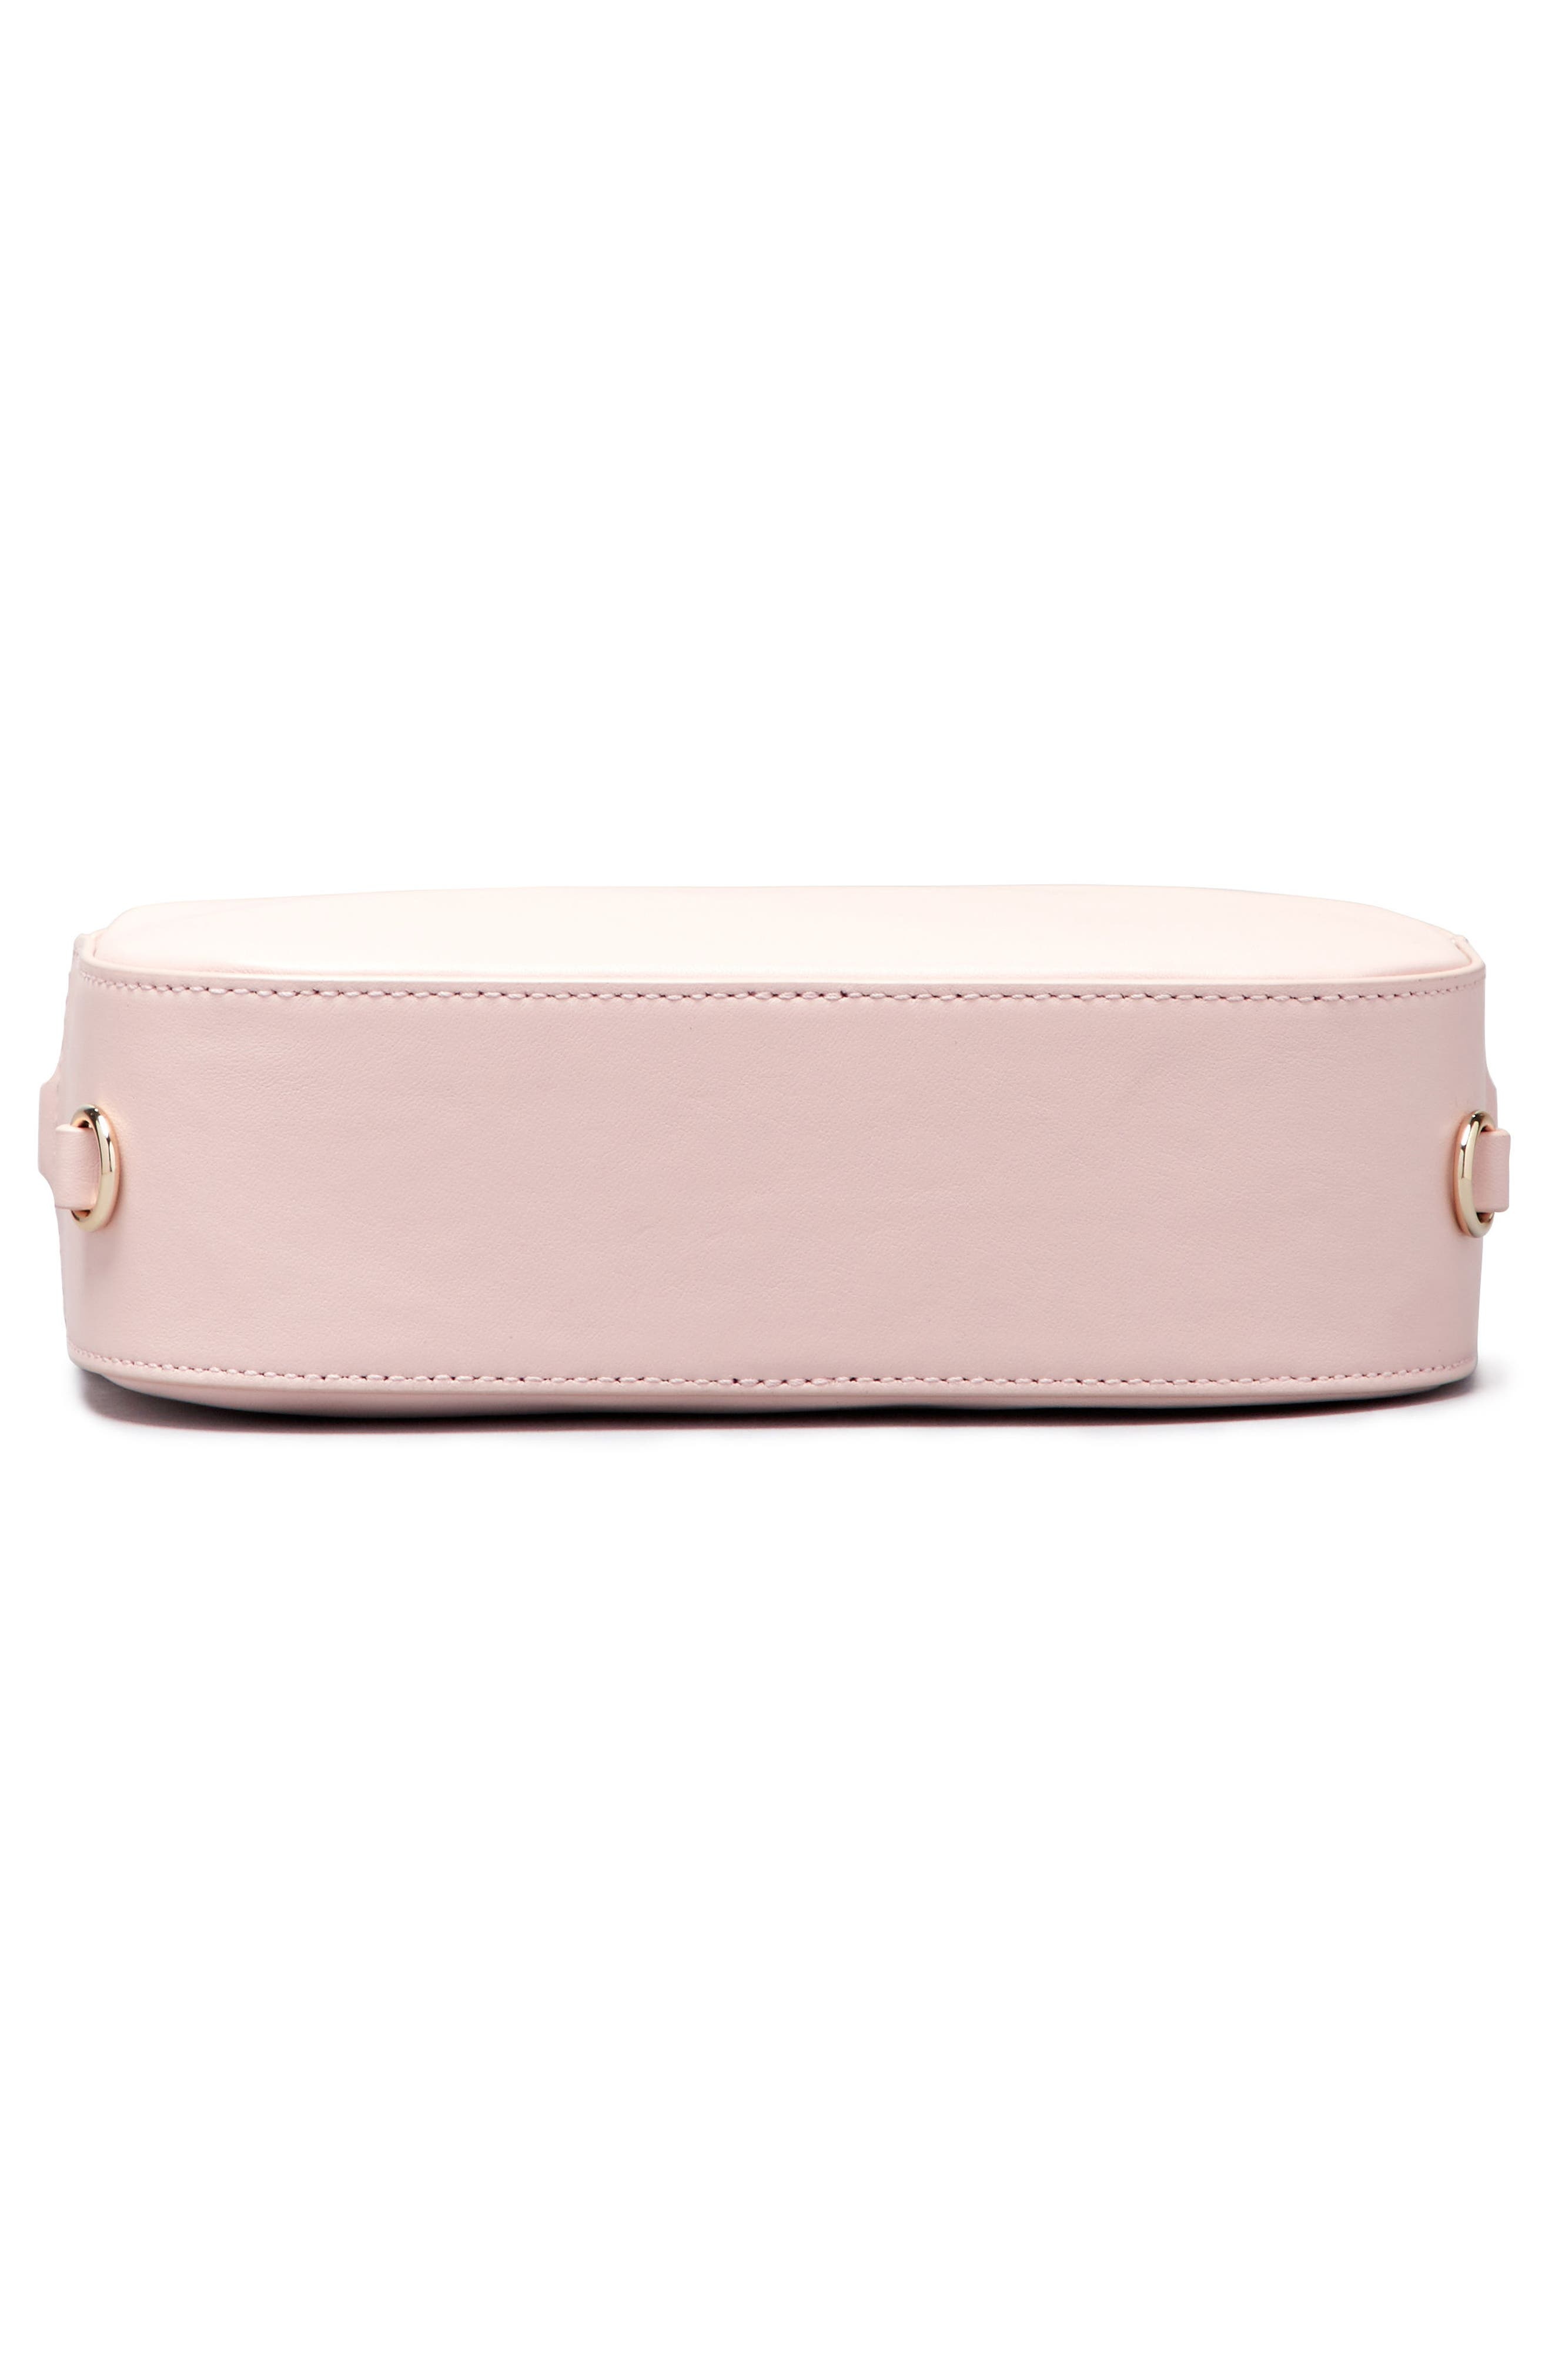 Personalized Leather Camera Bag,                             Alternate thumbnail 6, color,                             Cotton Candy/ White